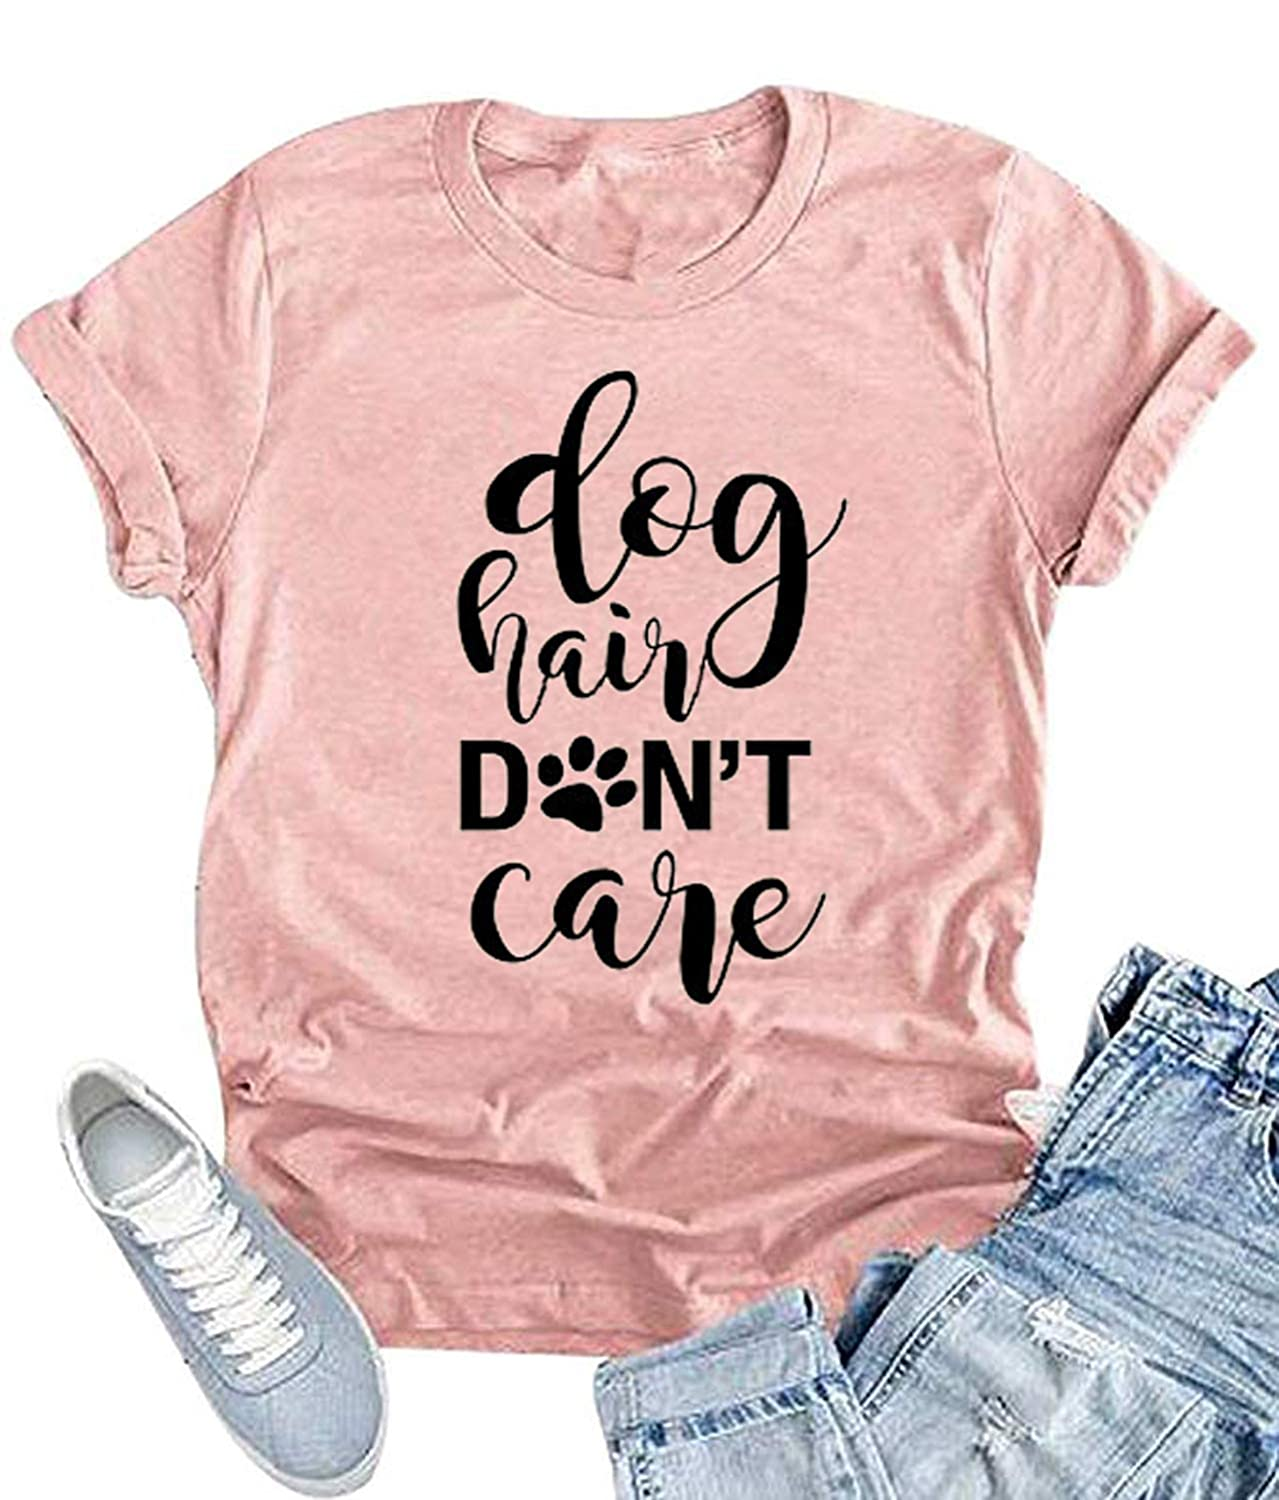 Dog Hair Don't Care T-Shirt Women's O-Neck Casual Short Sleeve Tee Funny Tops